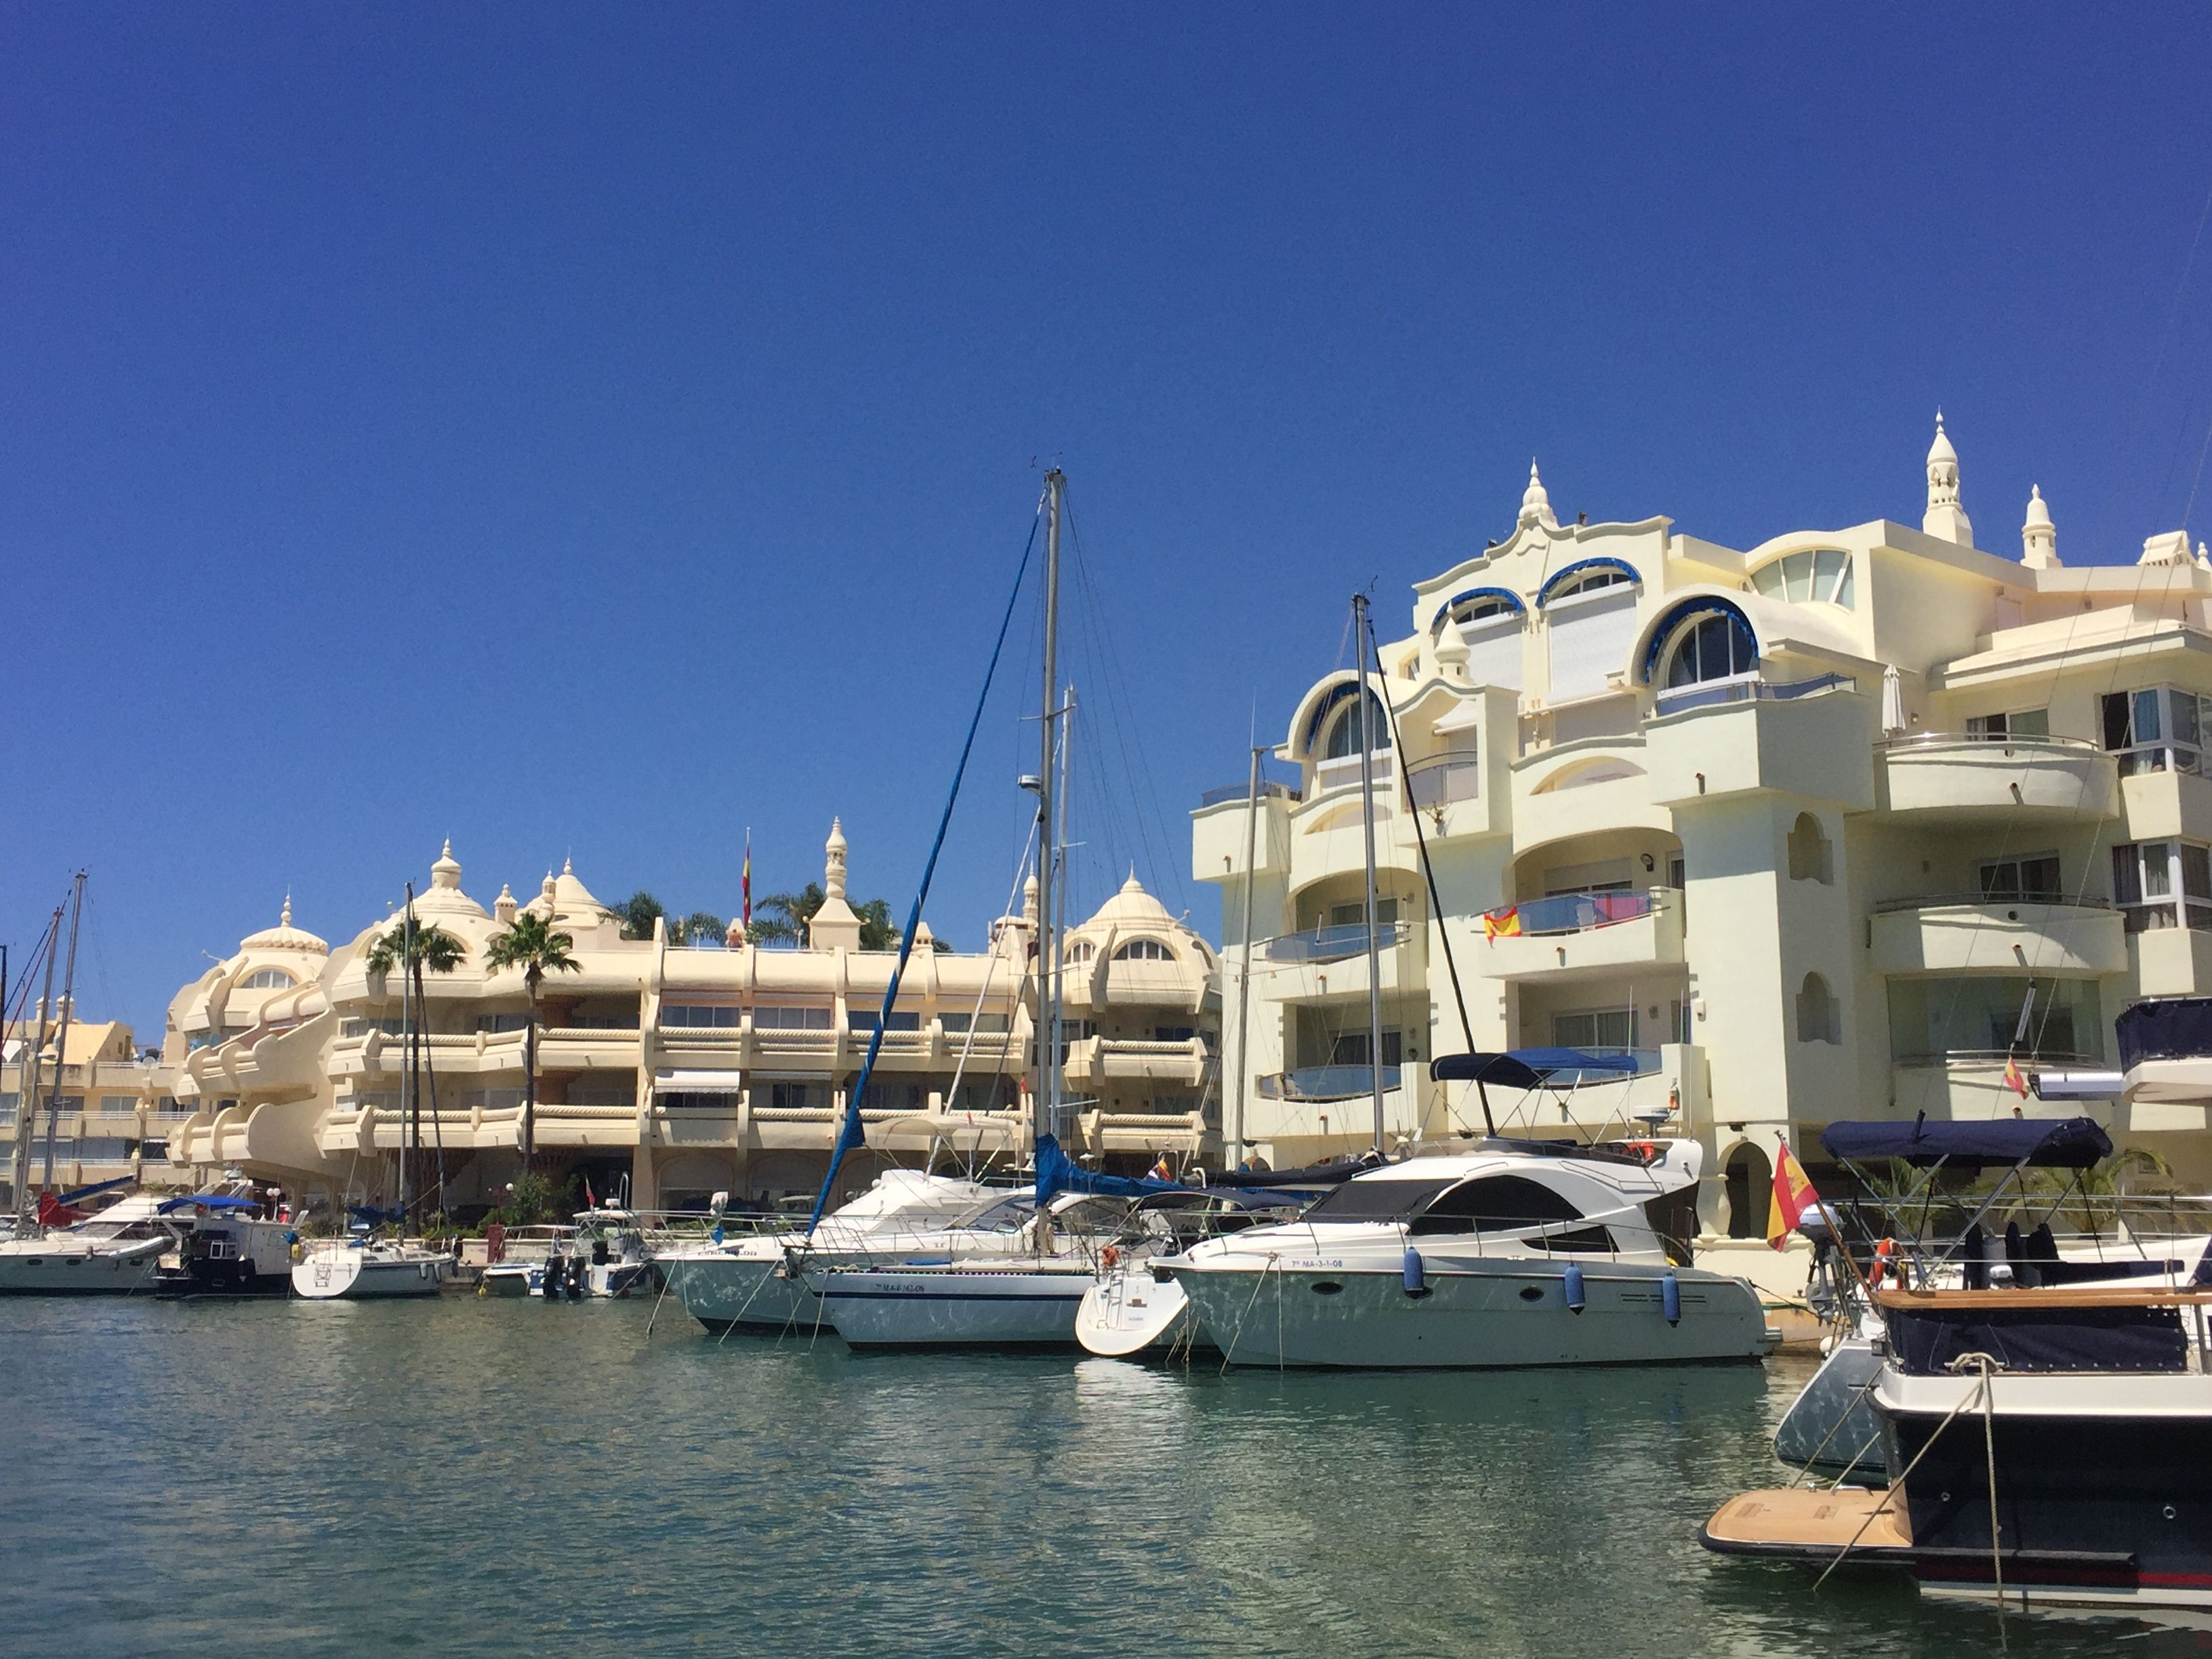 Apartment in Benalmadena - Costa del Sol - Spain | Costa ...